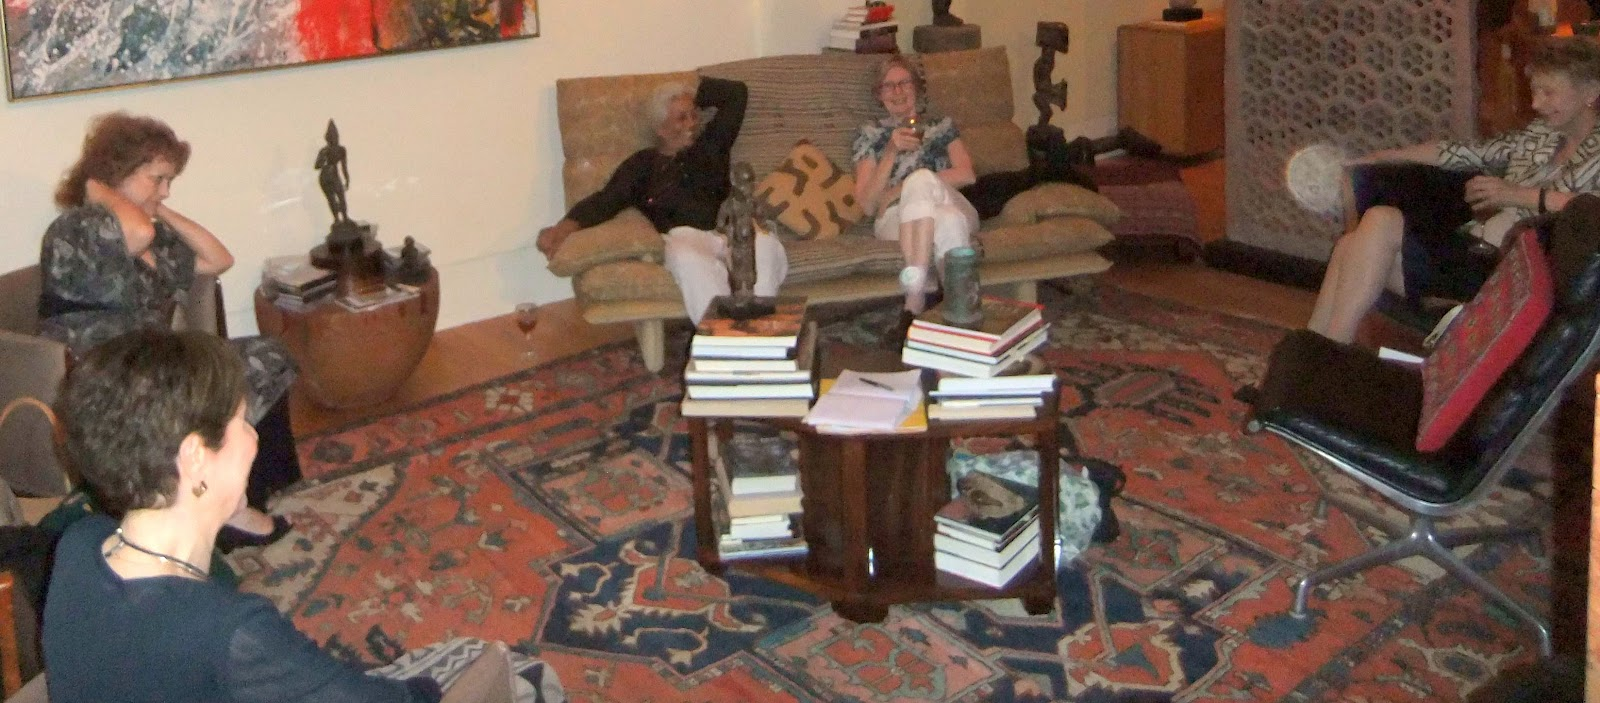 KRG - The Kochi Reading Group: Poetry Session July 15, 2011